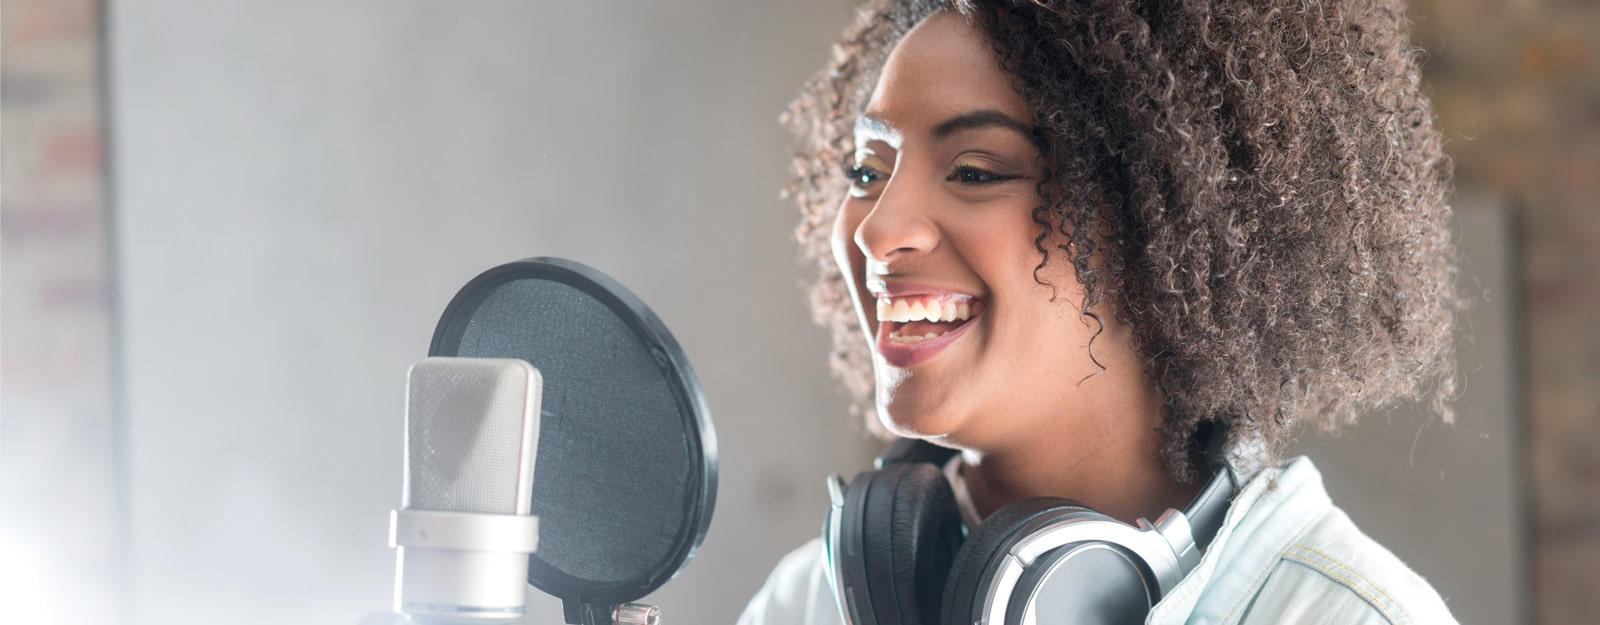 Translations Into Italian: Voice Over And Subtitling Agency In UK